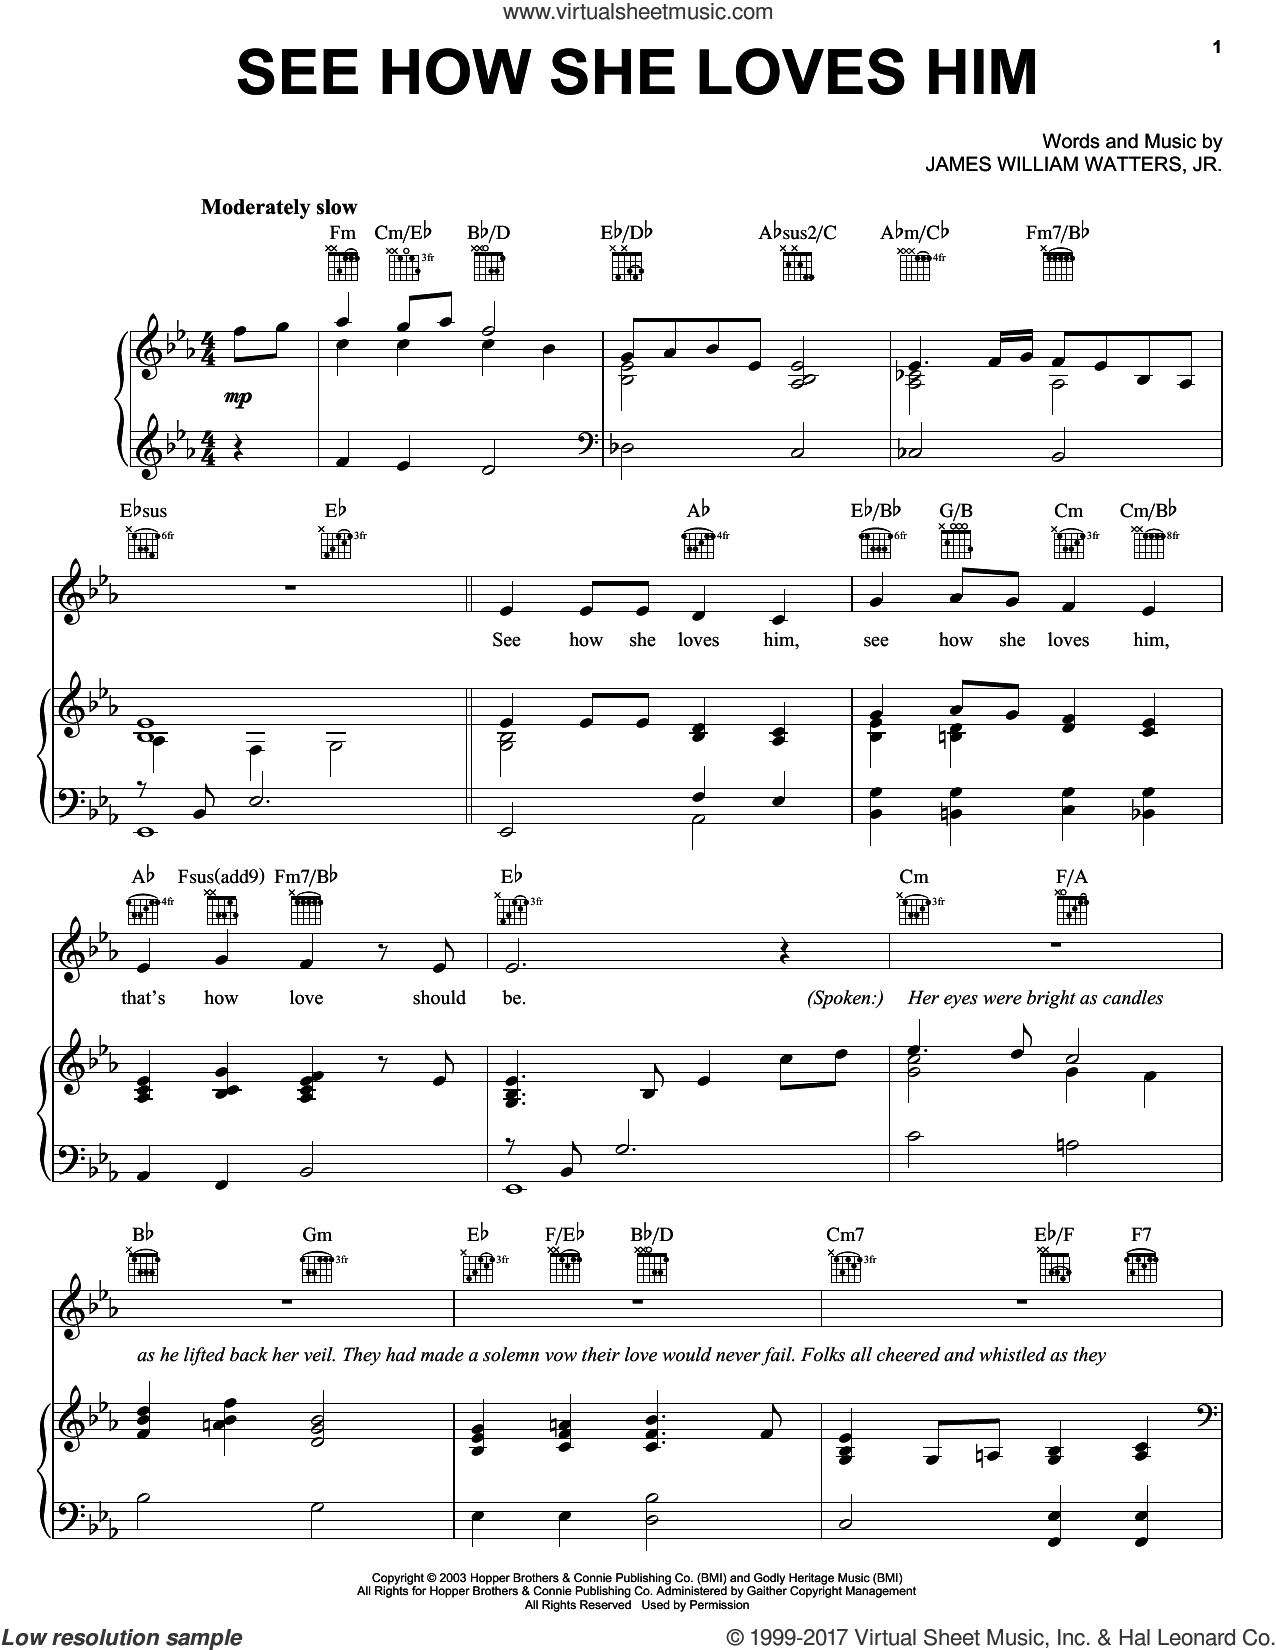 See How She Loves Him sheet music for voice, piano or guitar by The Hoppers, intermediate voice, piano or guitar. Score Image Preview.